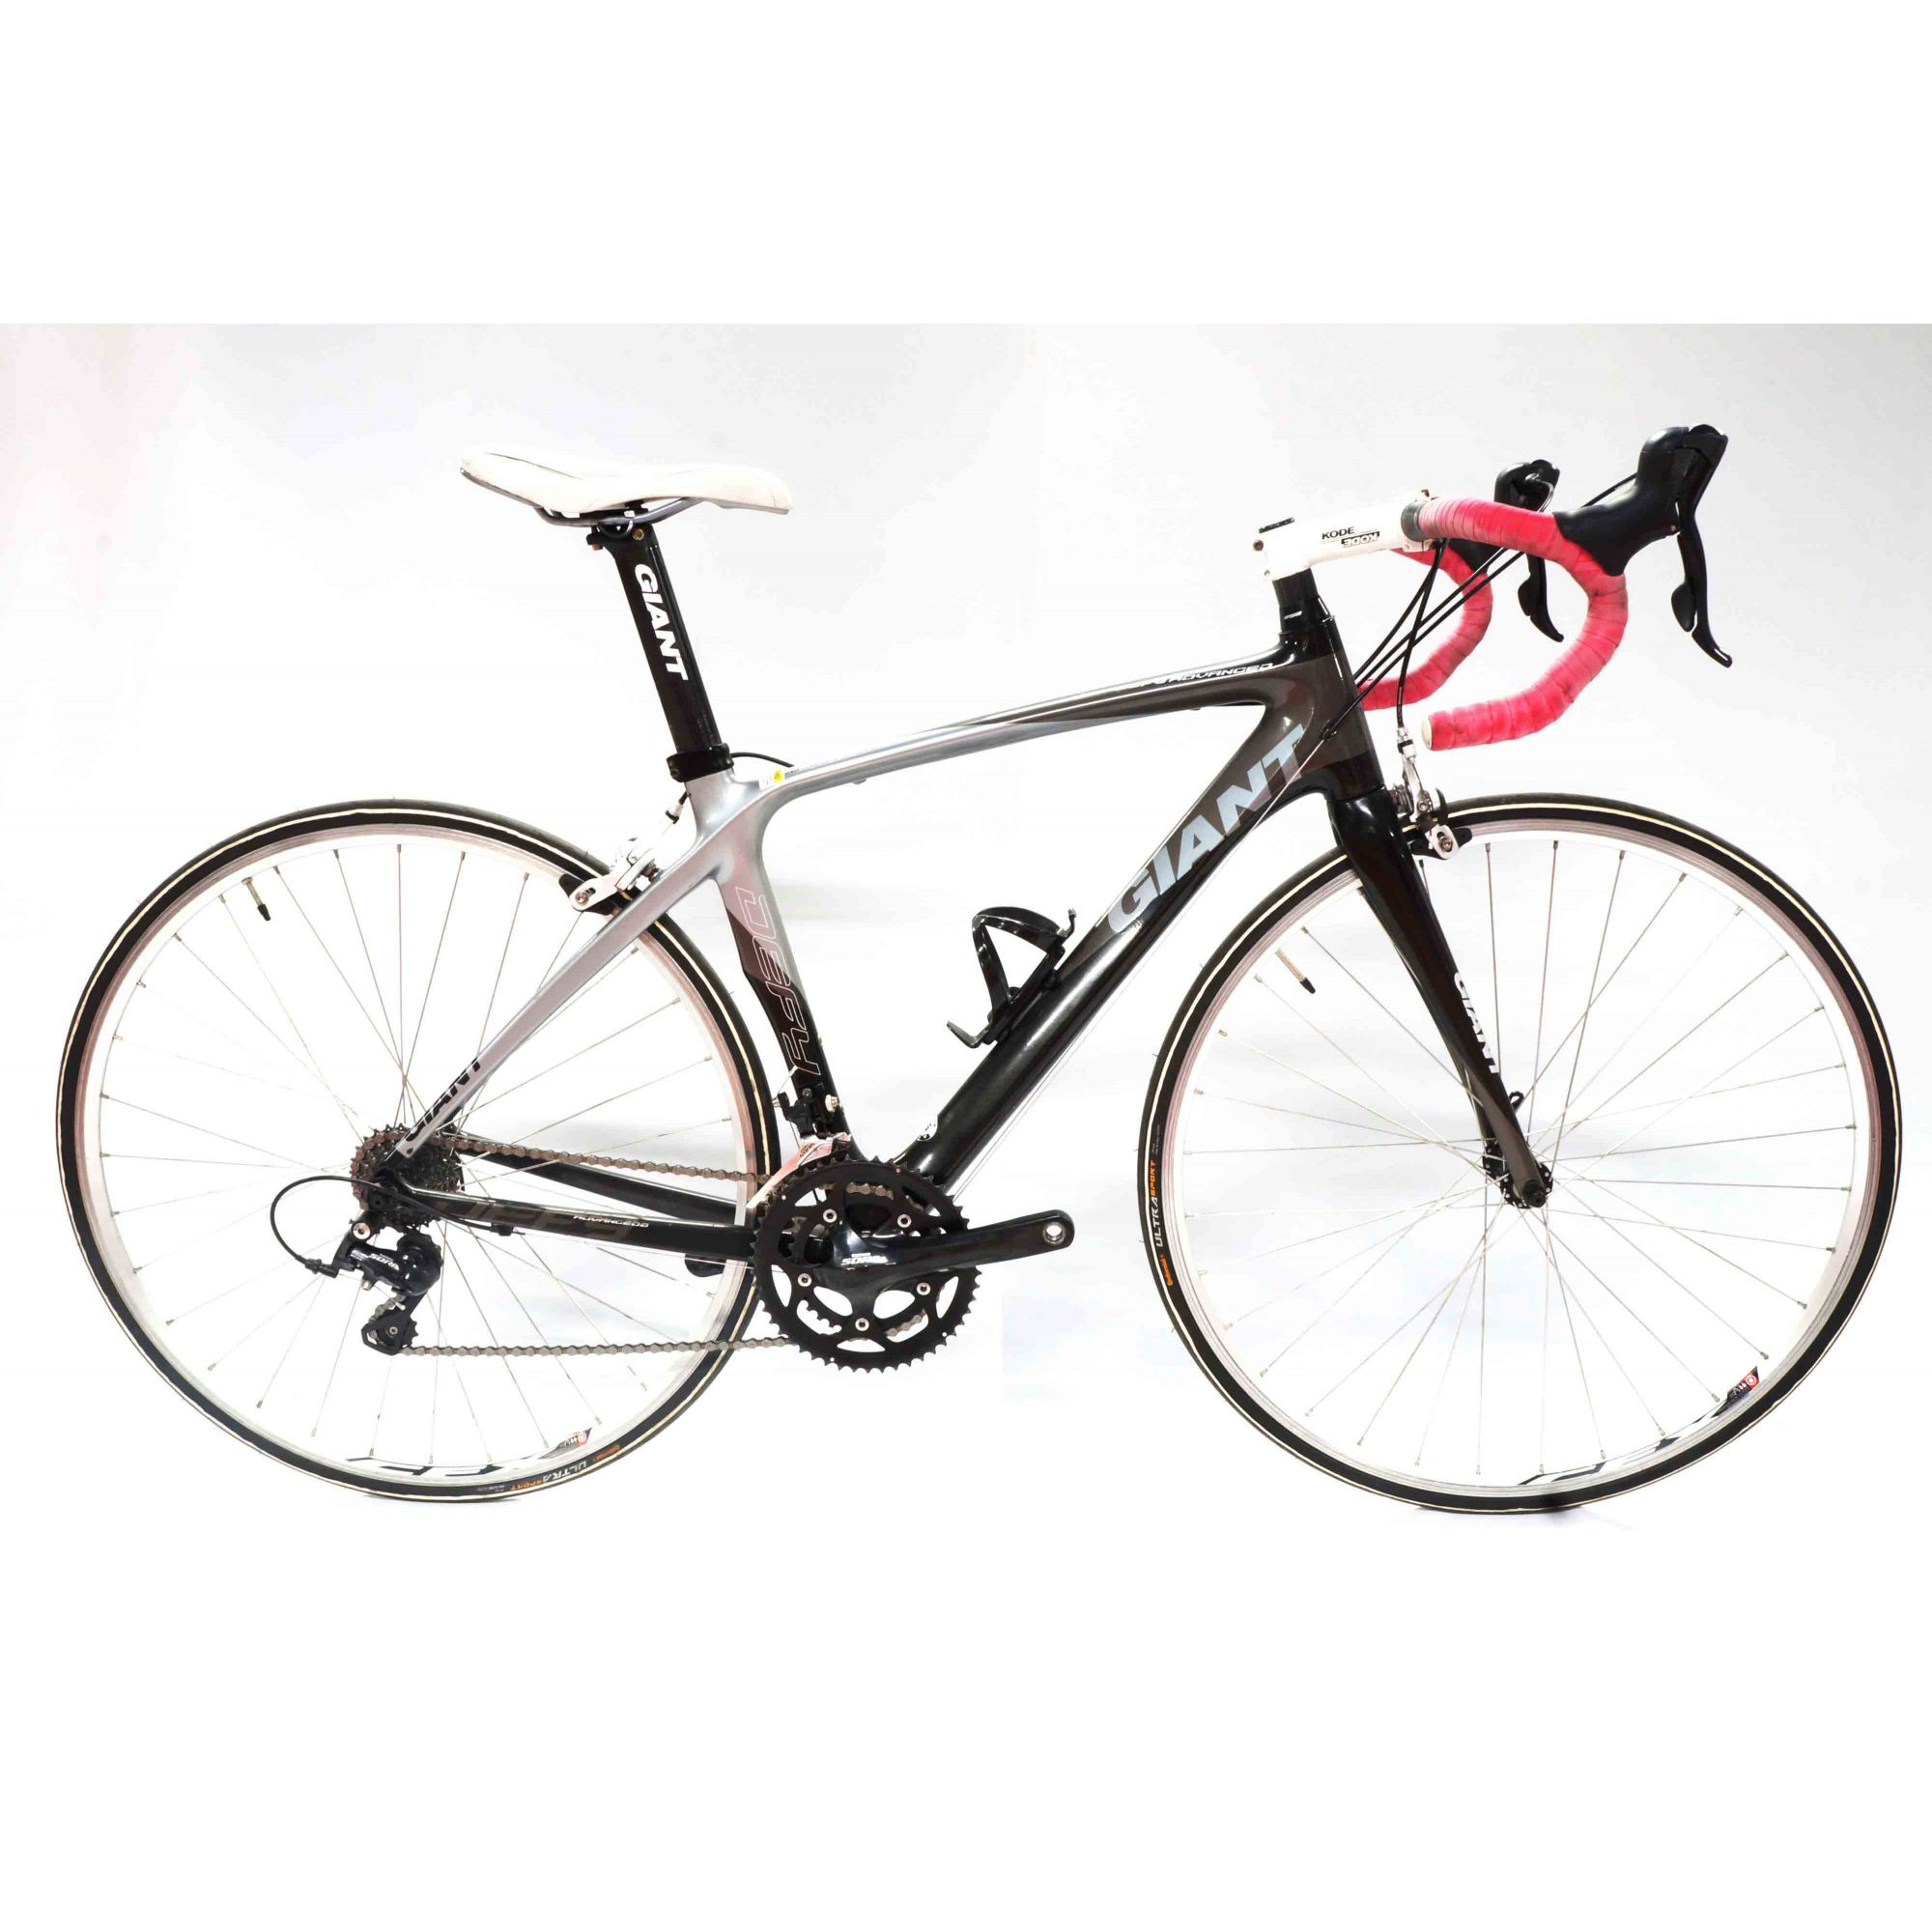 BICICLETA 700 GIANT DEFY ADVANCED T.S PRETO/CINZA (SEMI NOVA)